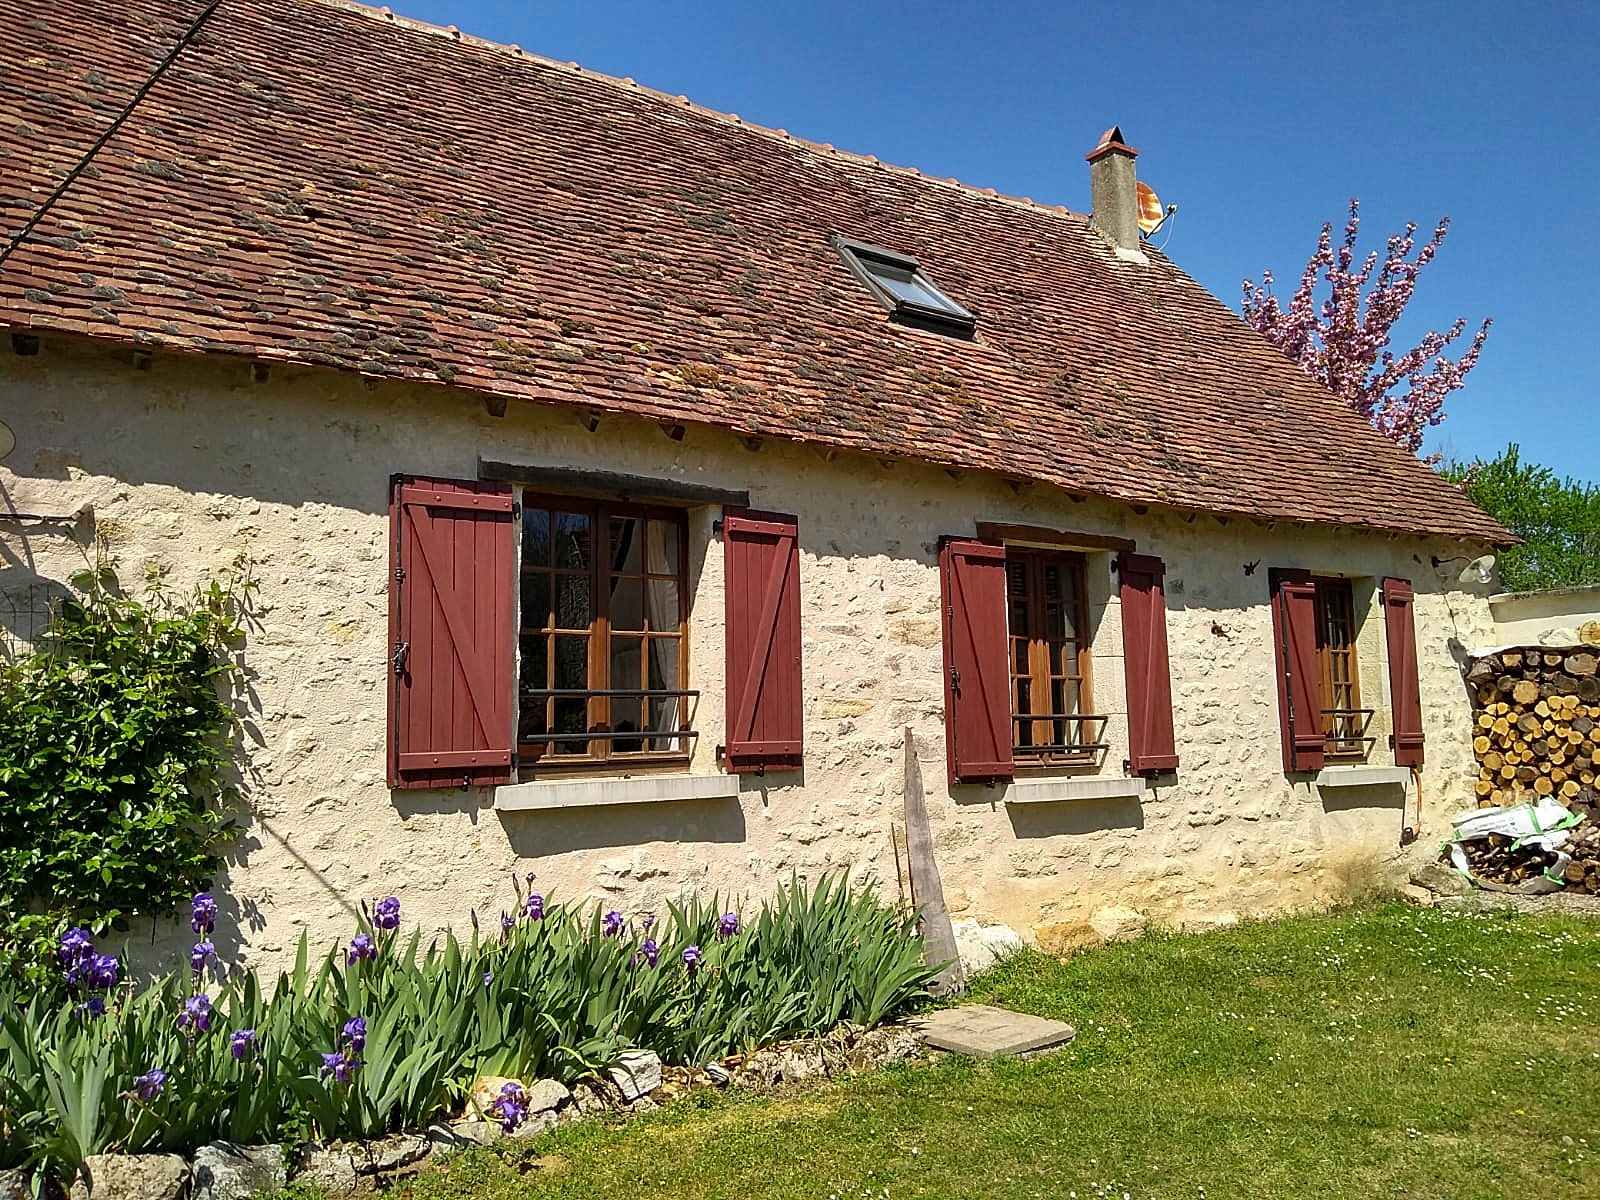 La Brenne, Indre 36, near Lignac: 2 cottages with garden